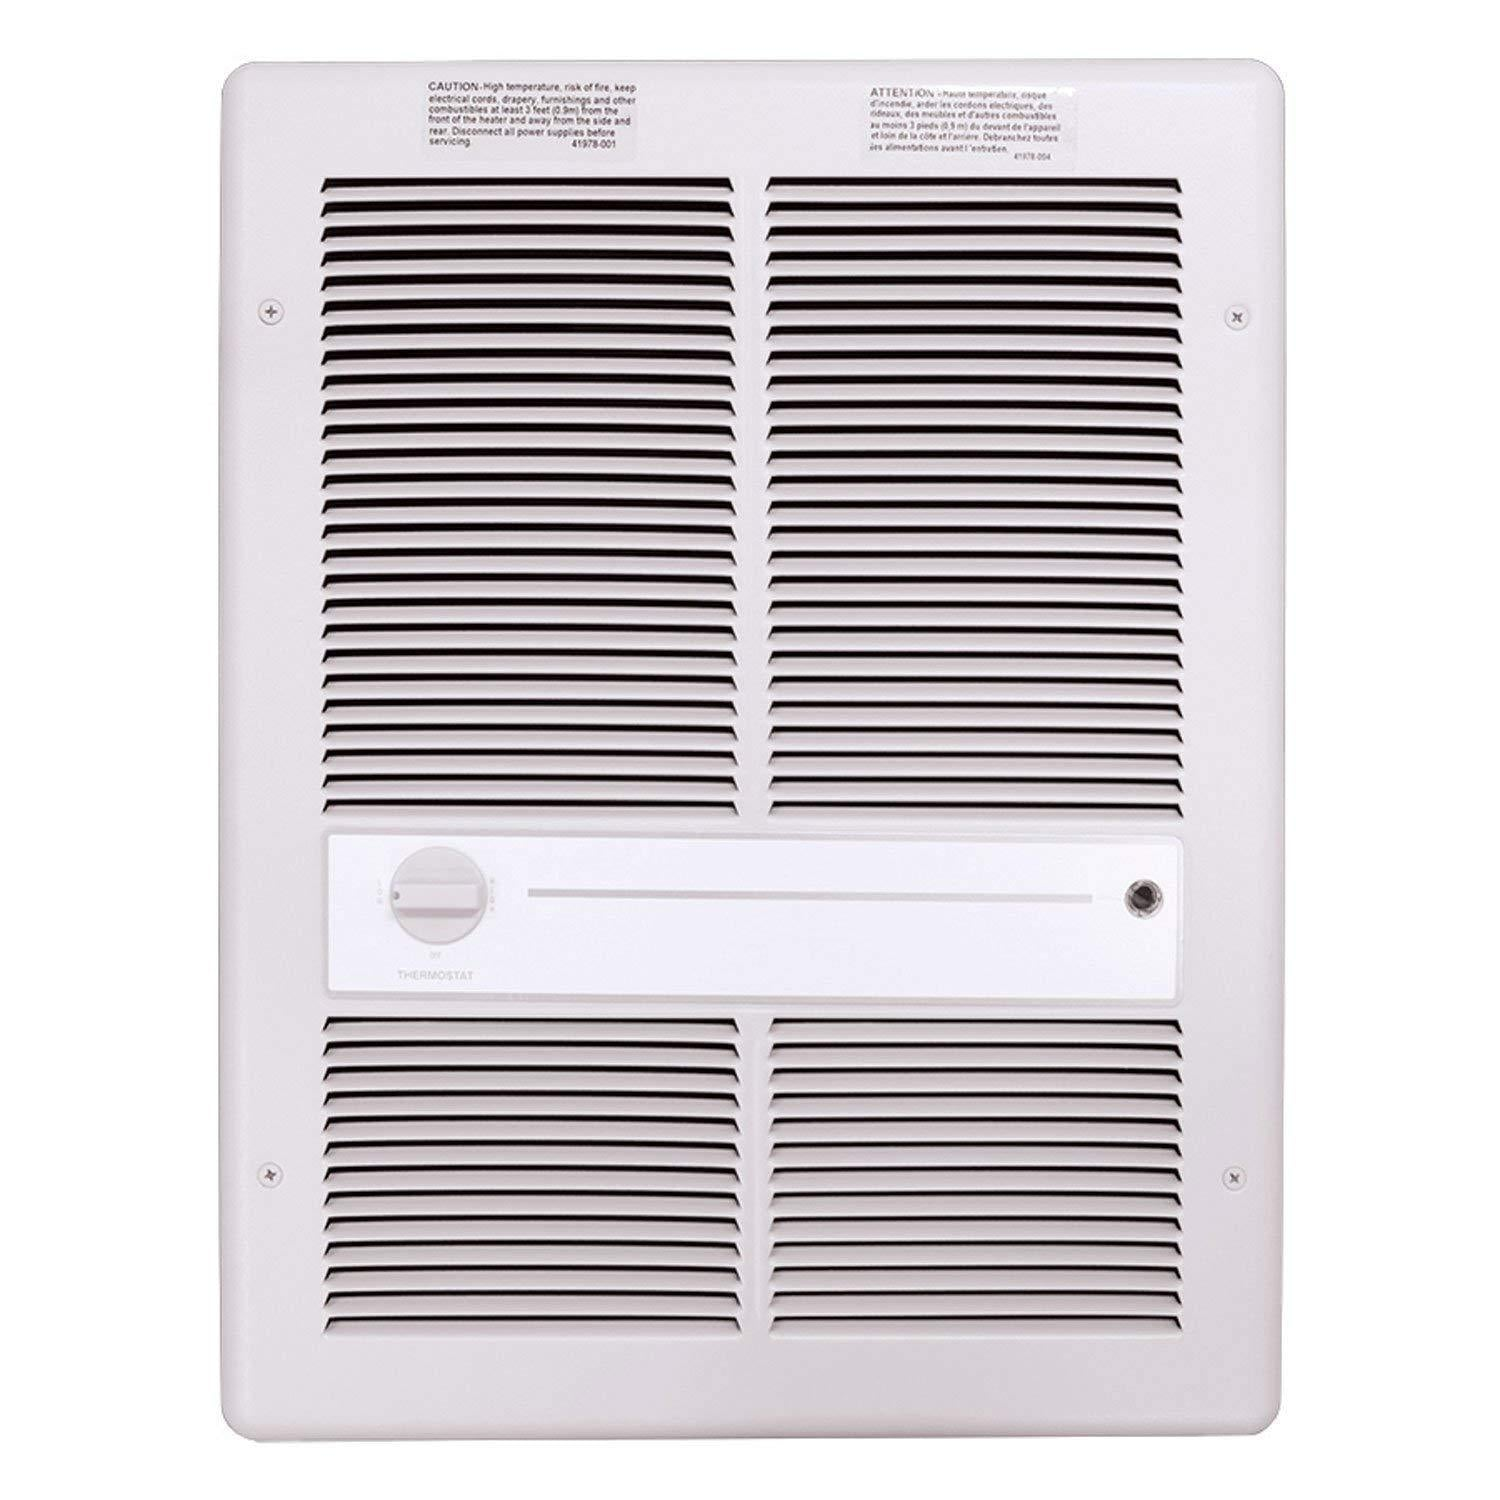 TPI 4800W 277V 3310 Series Fan Forced Wall Heater (White) - Without Summer Fan Switch - 2 Pole Thermostat - G3317T2RPW